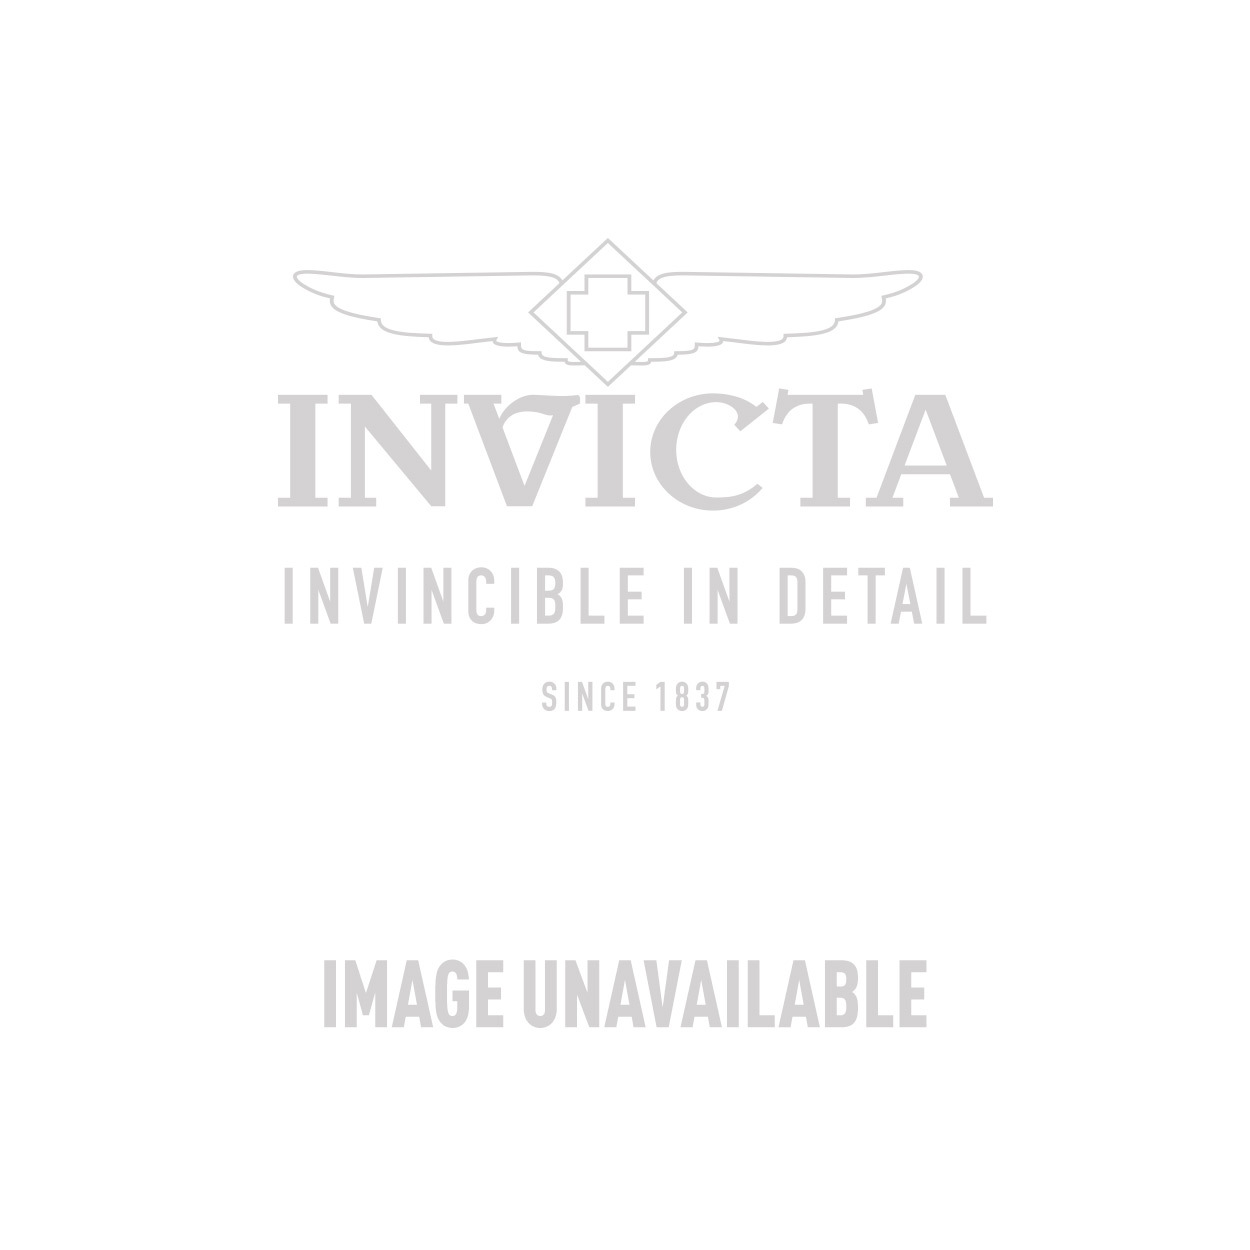 Invicta 22.25cm Bracelets in Rhodium Aged - Model J0311